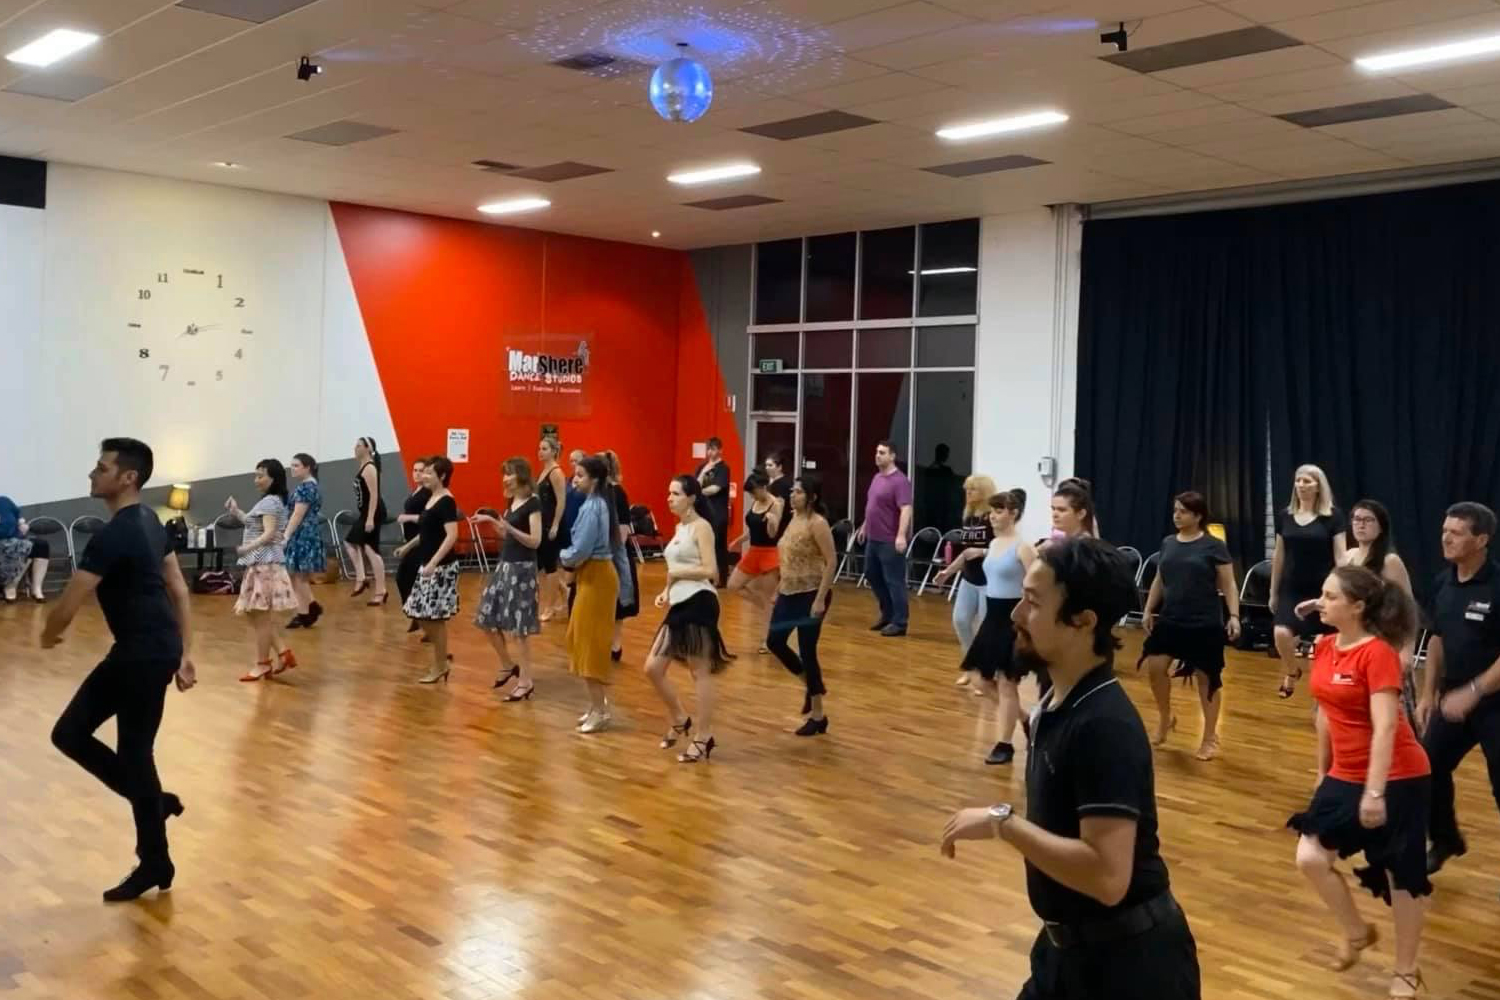 Adults Dance, Fitness & Lifestyle classes